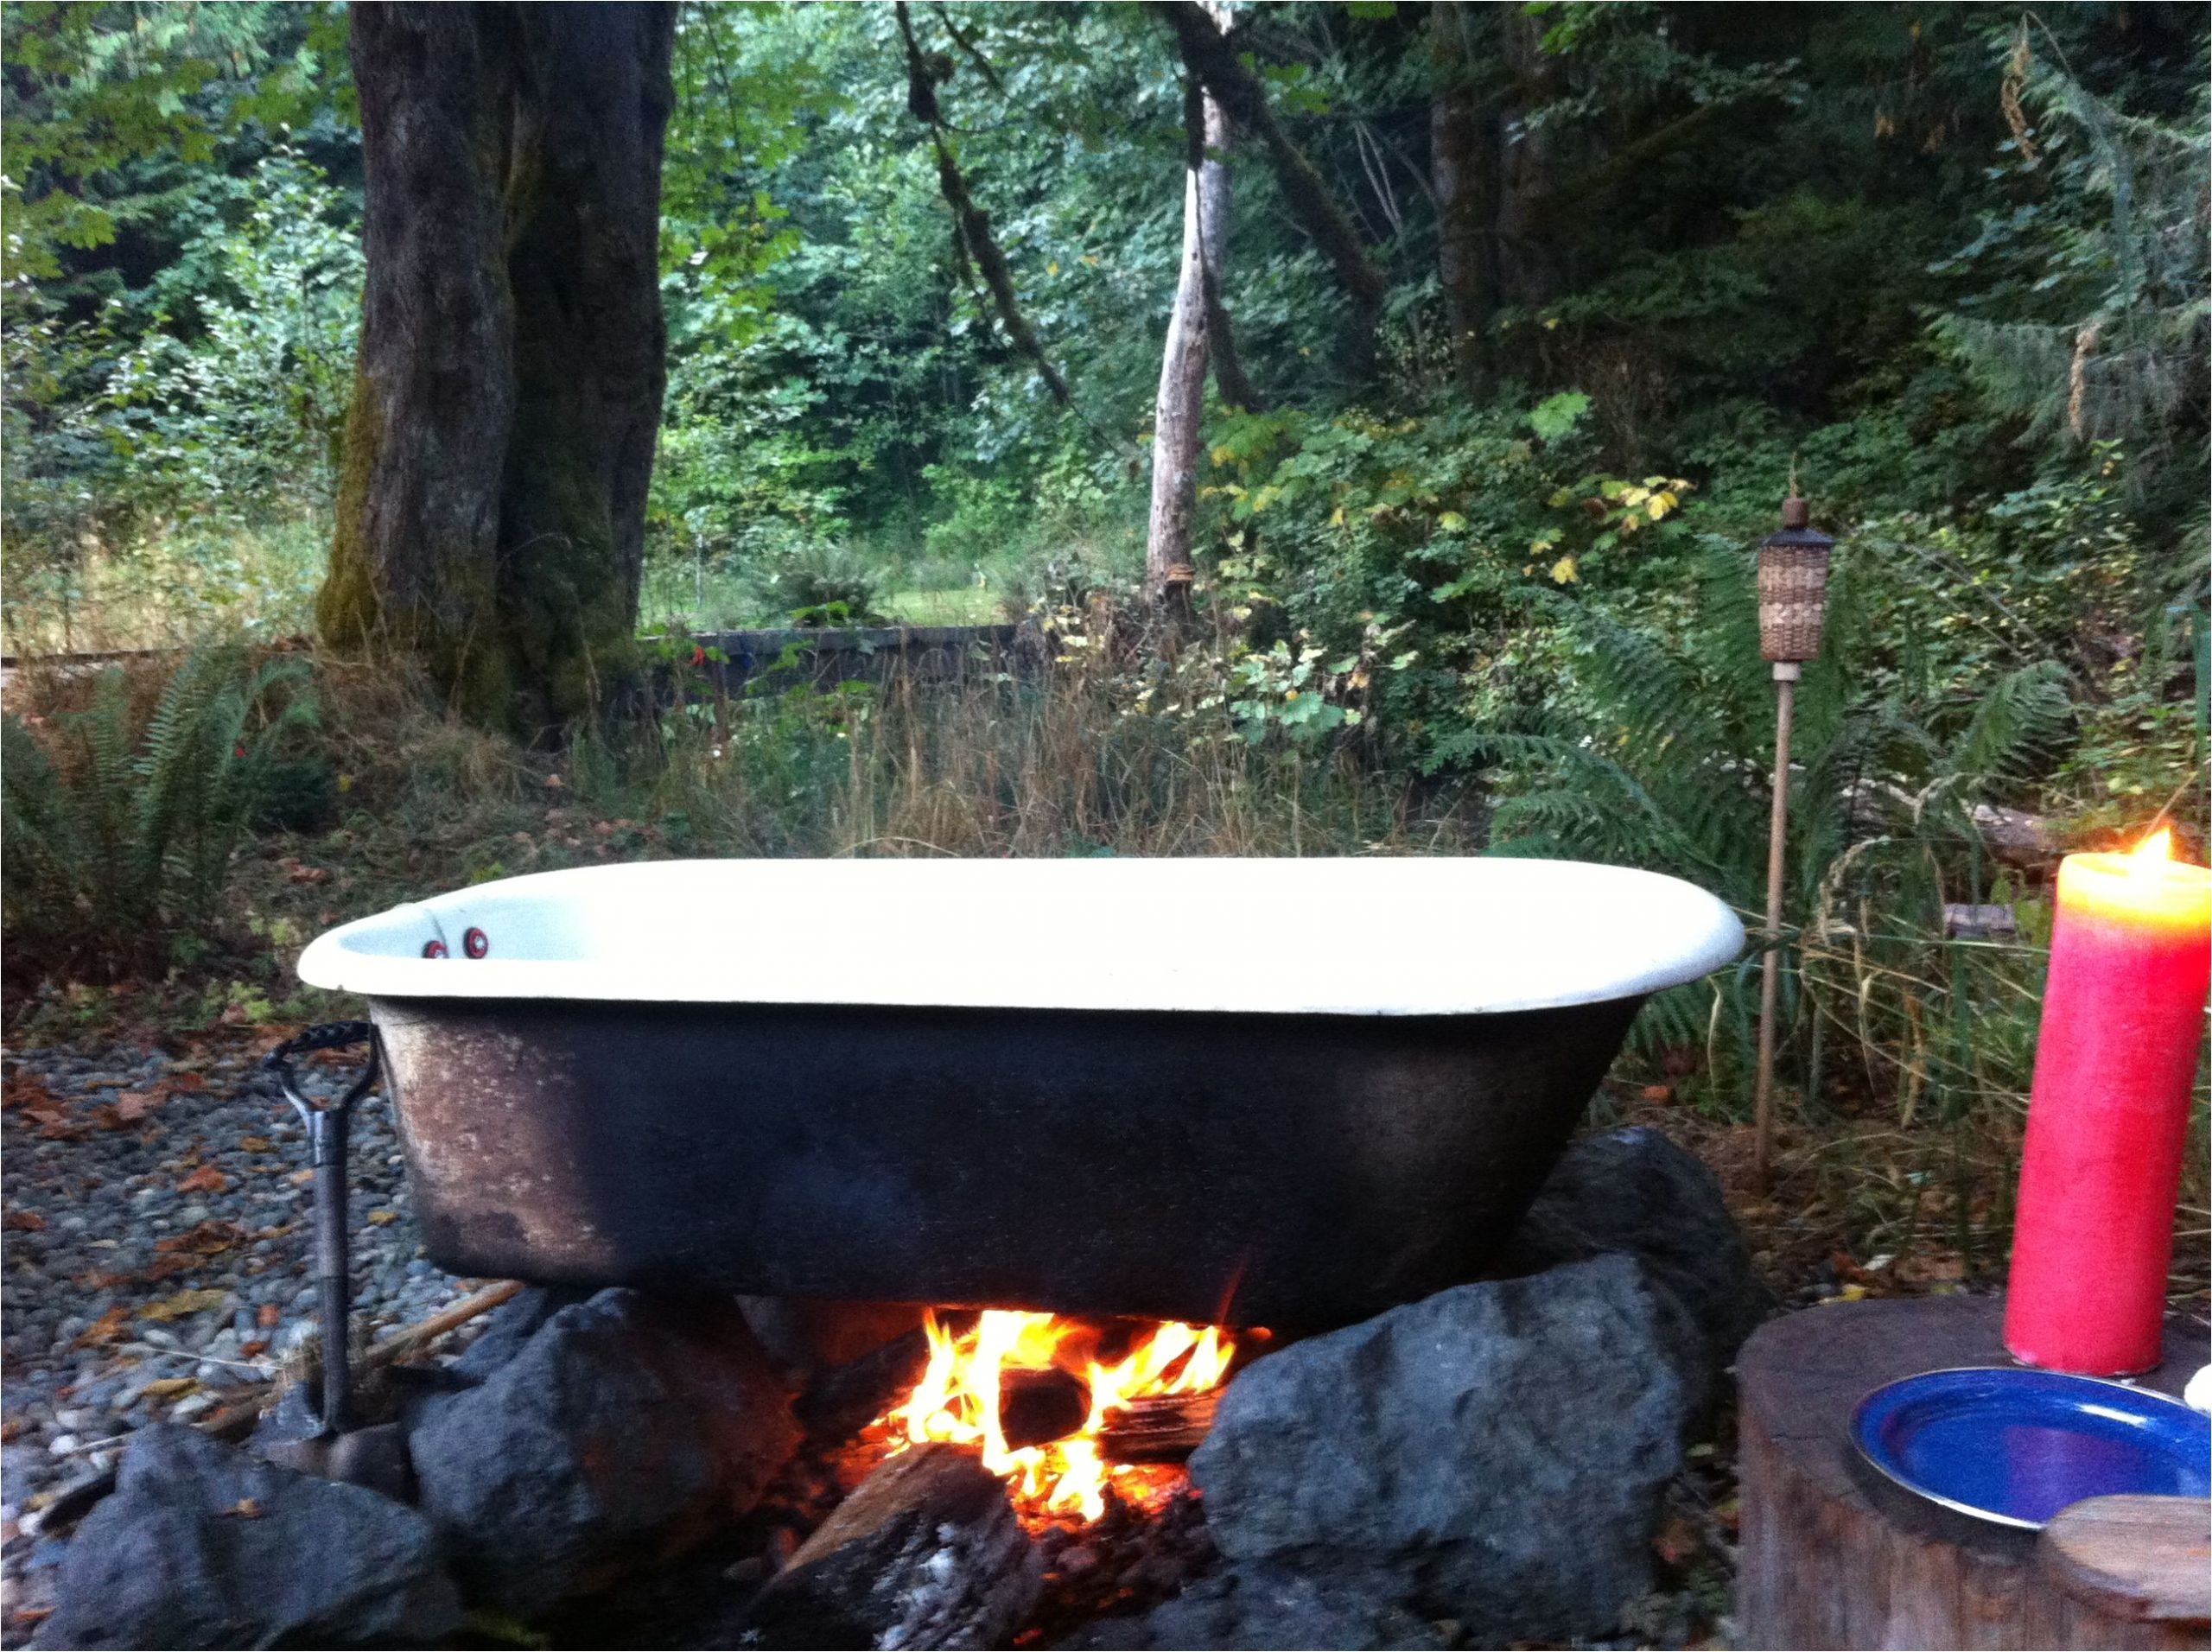 Outdoor Bathtub Tulum Cast Iron Tub Heated by Fire Used for Glamping Olympic